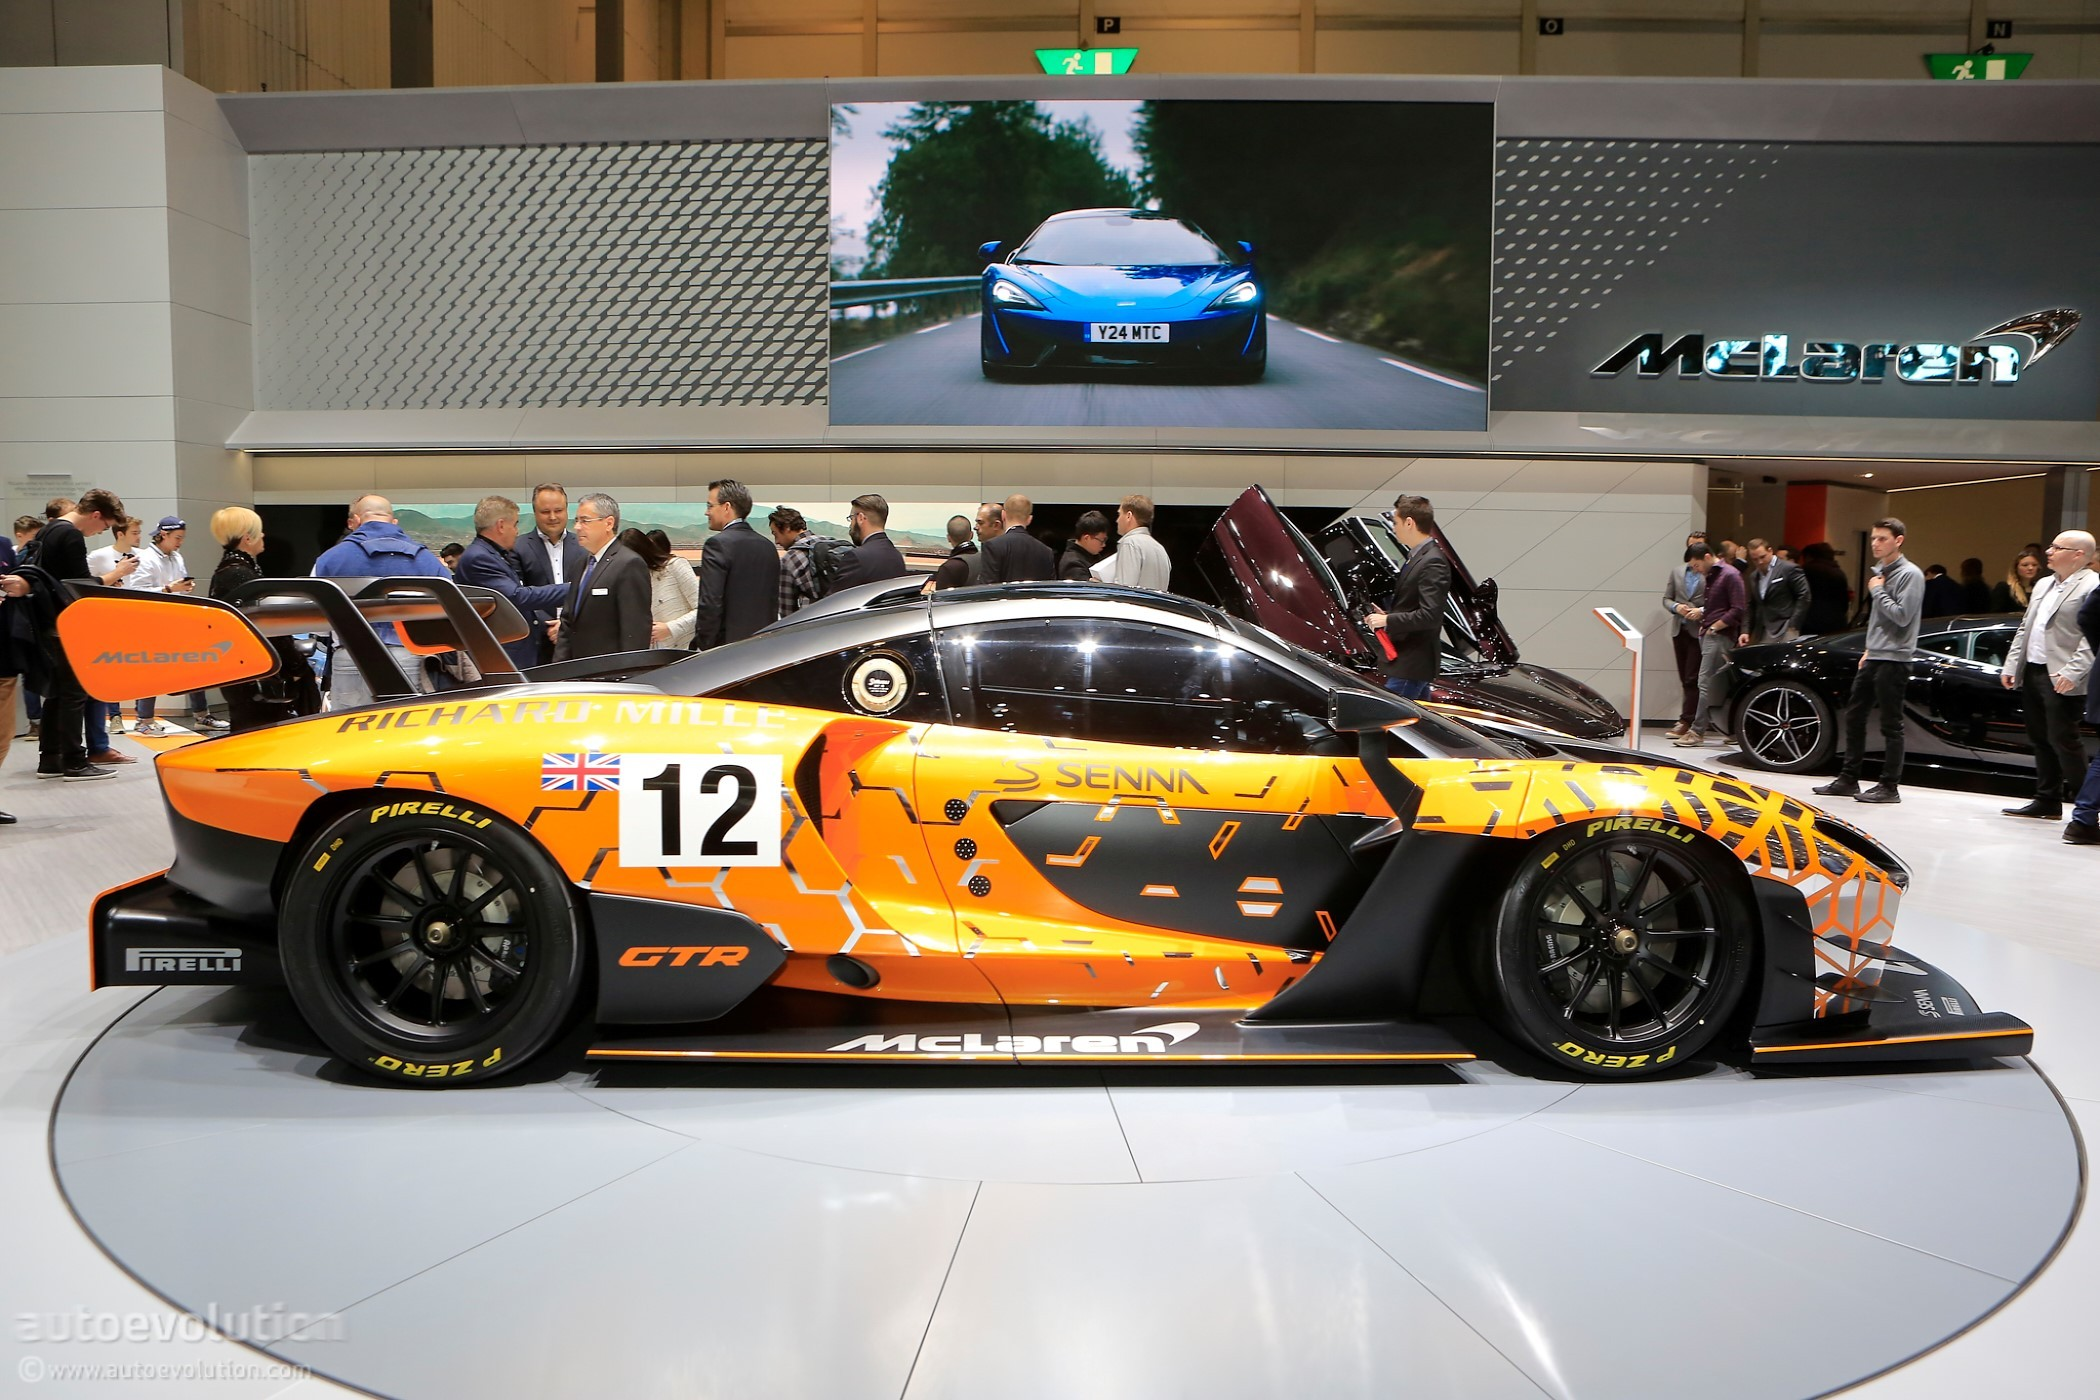 Track Only Mclaren Senna Gtr Enters Prototype Testing Stage